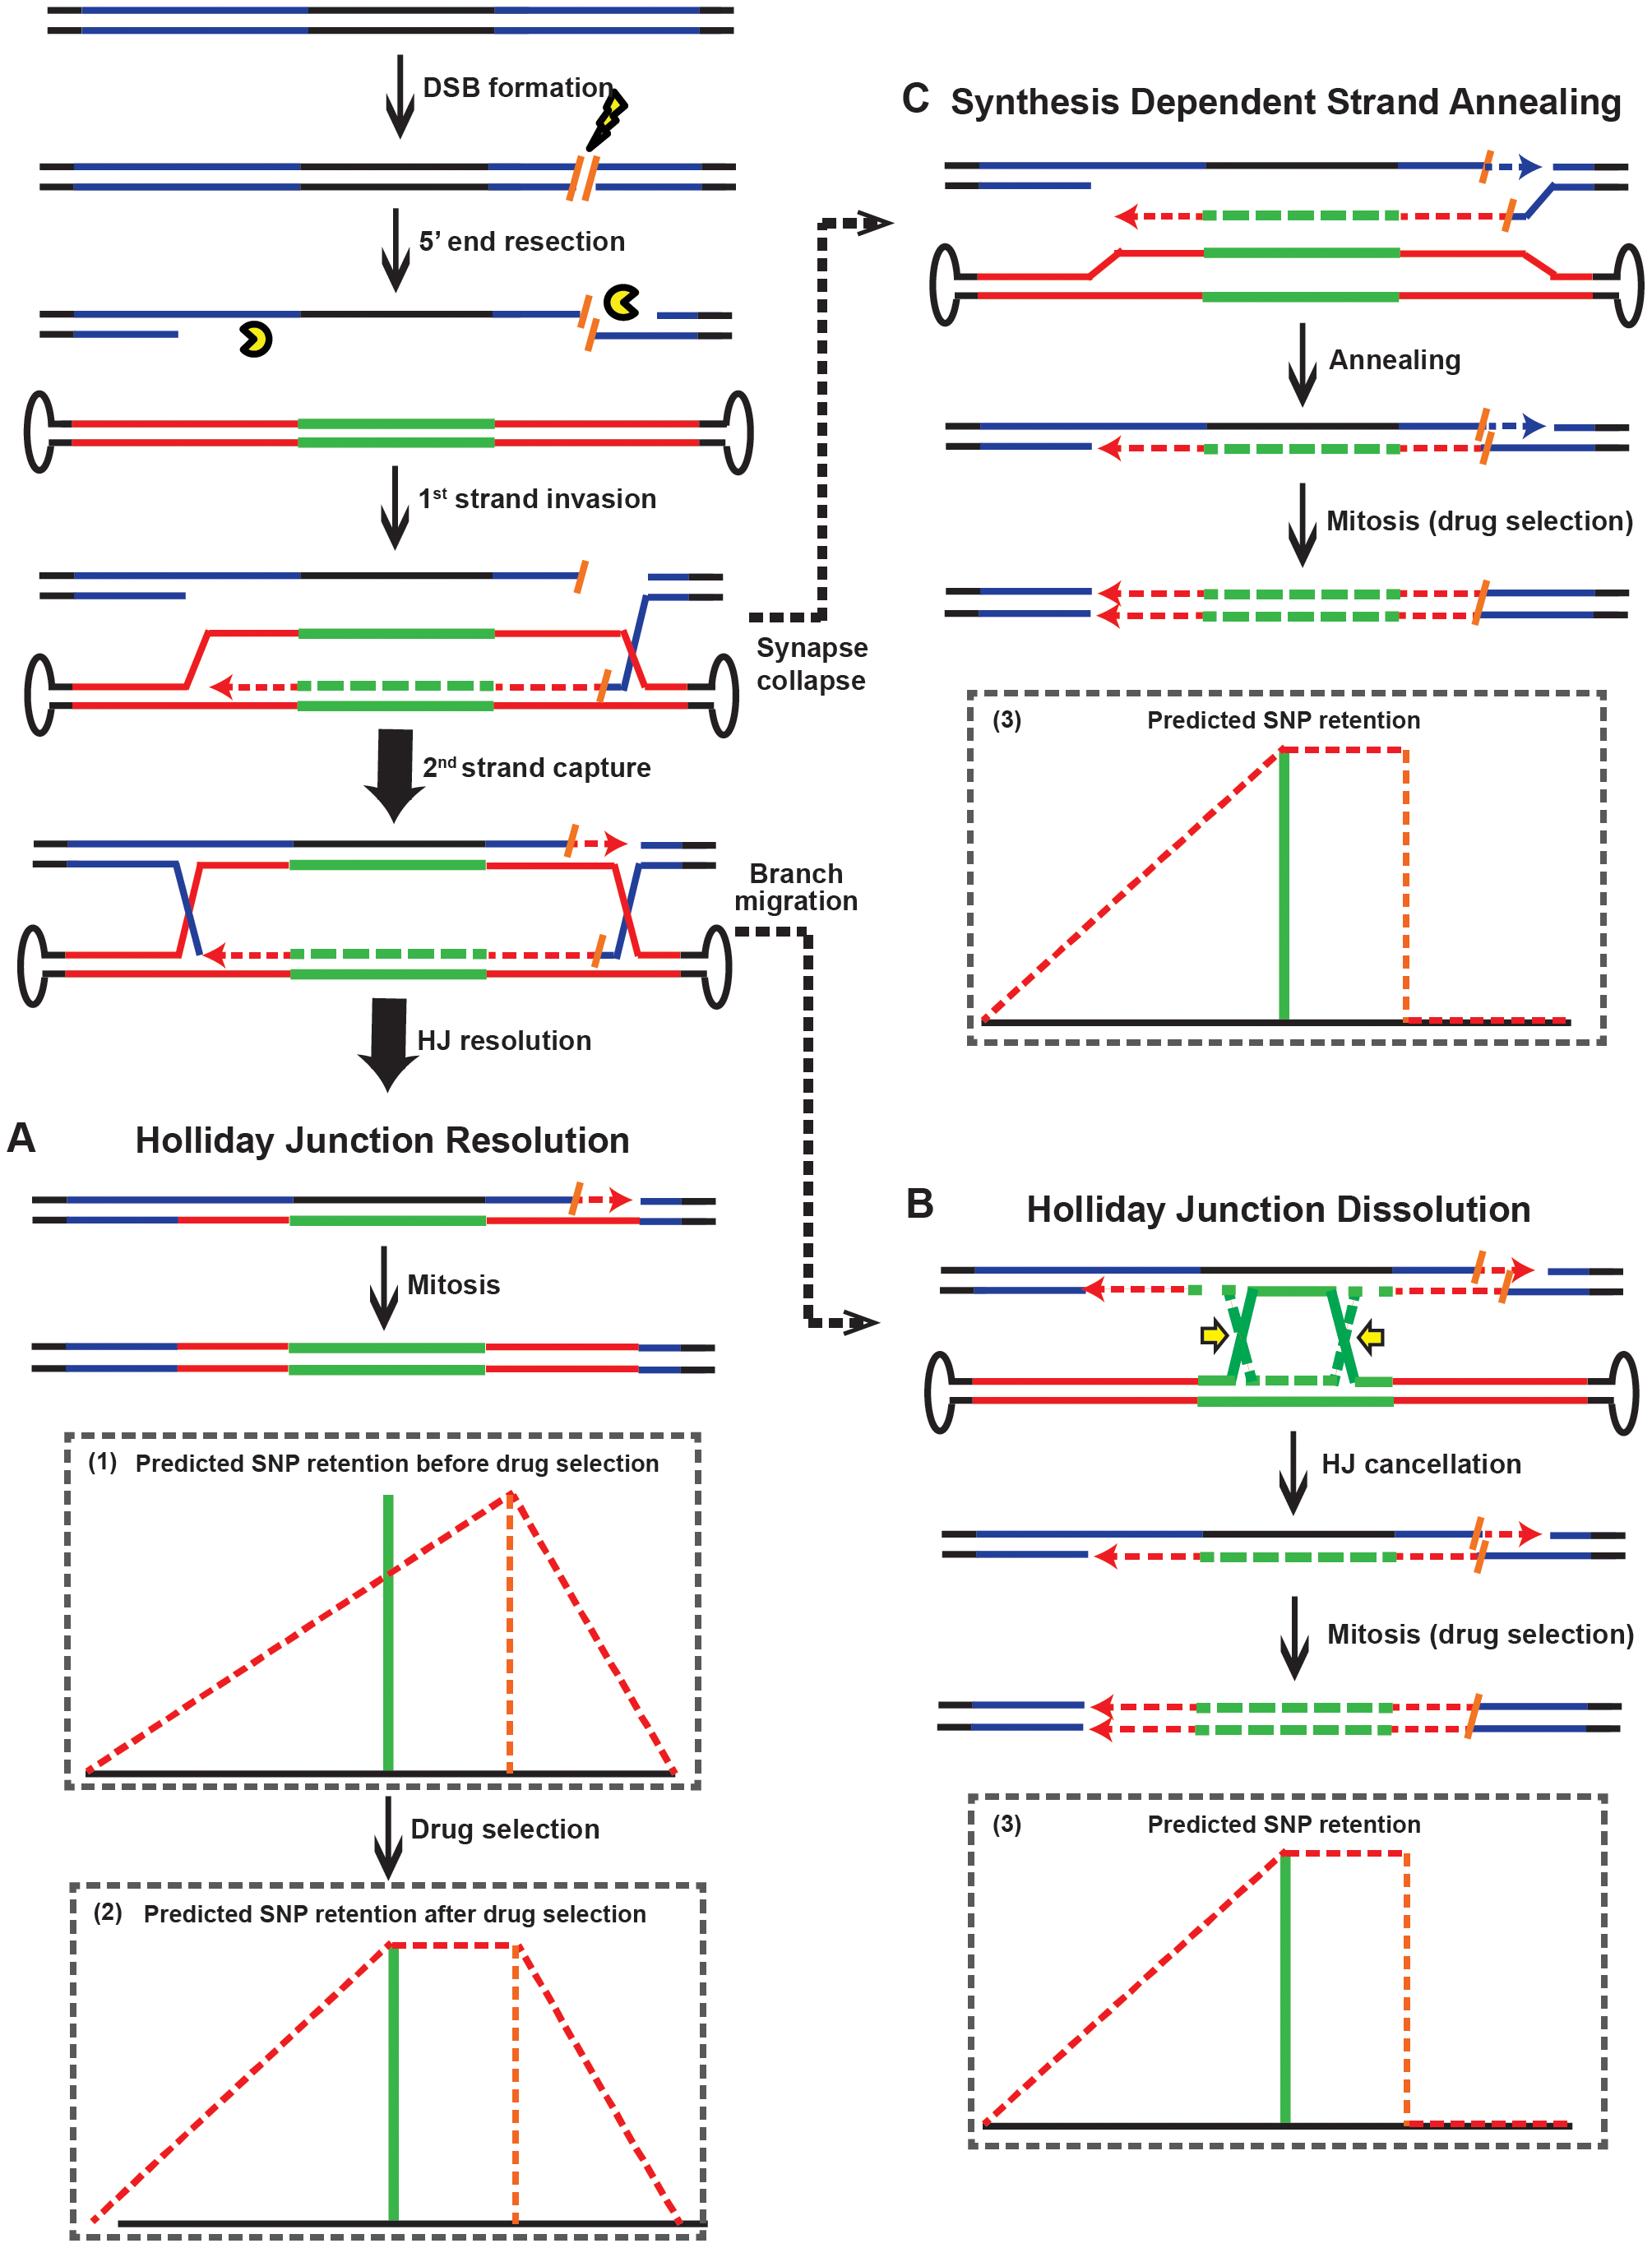 Models for rAAV gene targeting in the presence of DSBs.